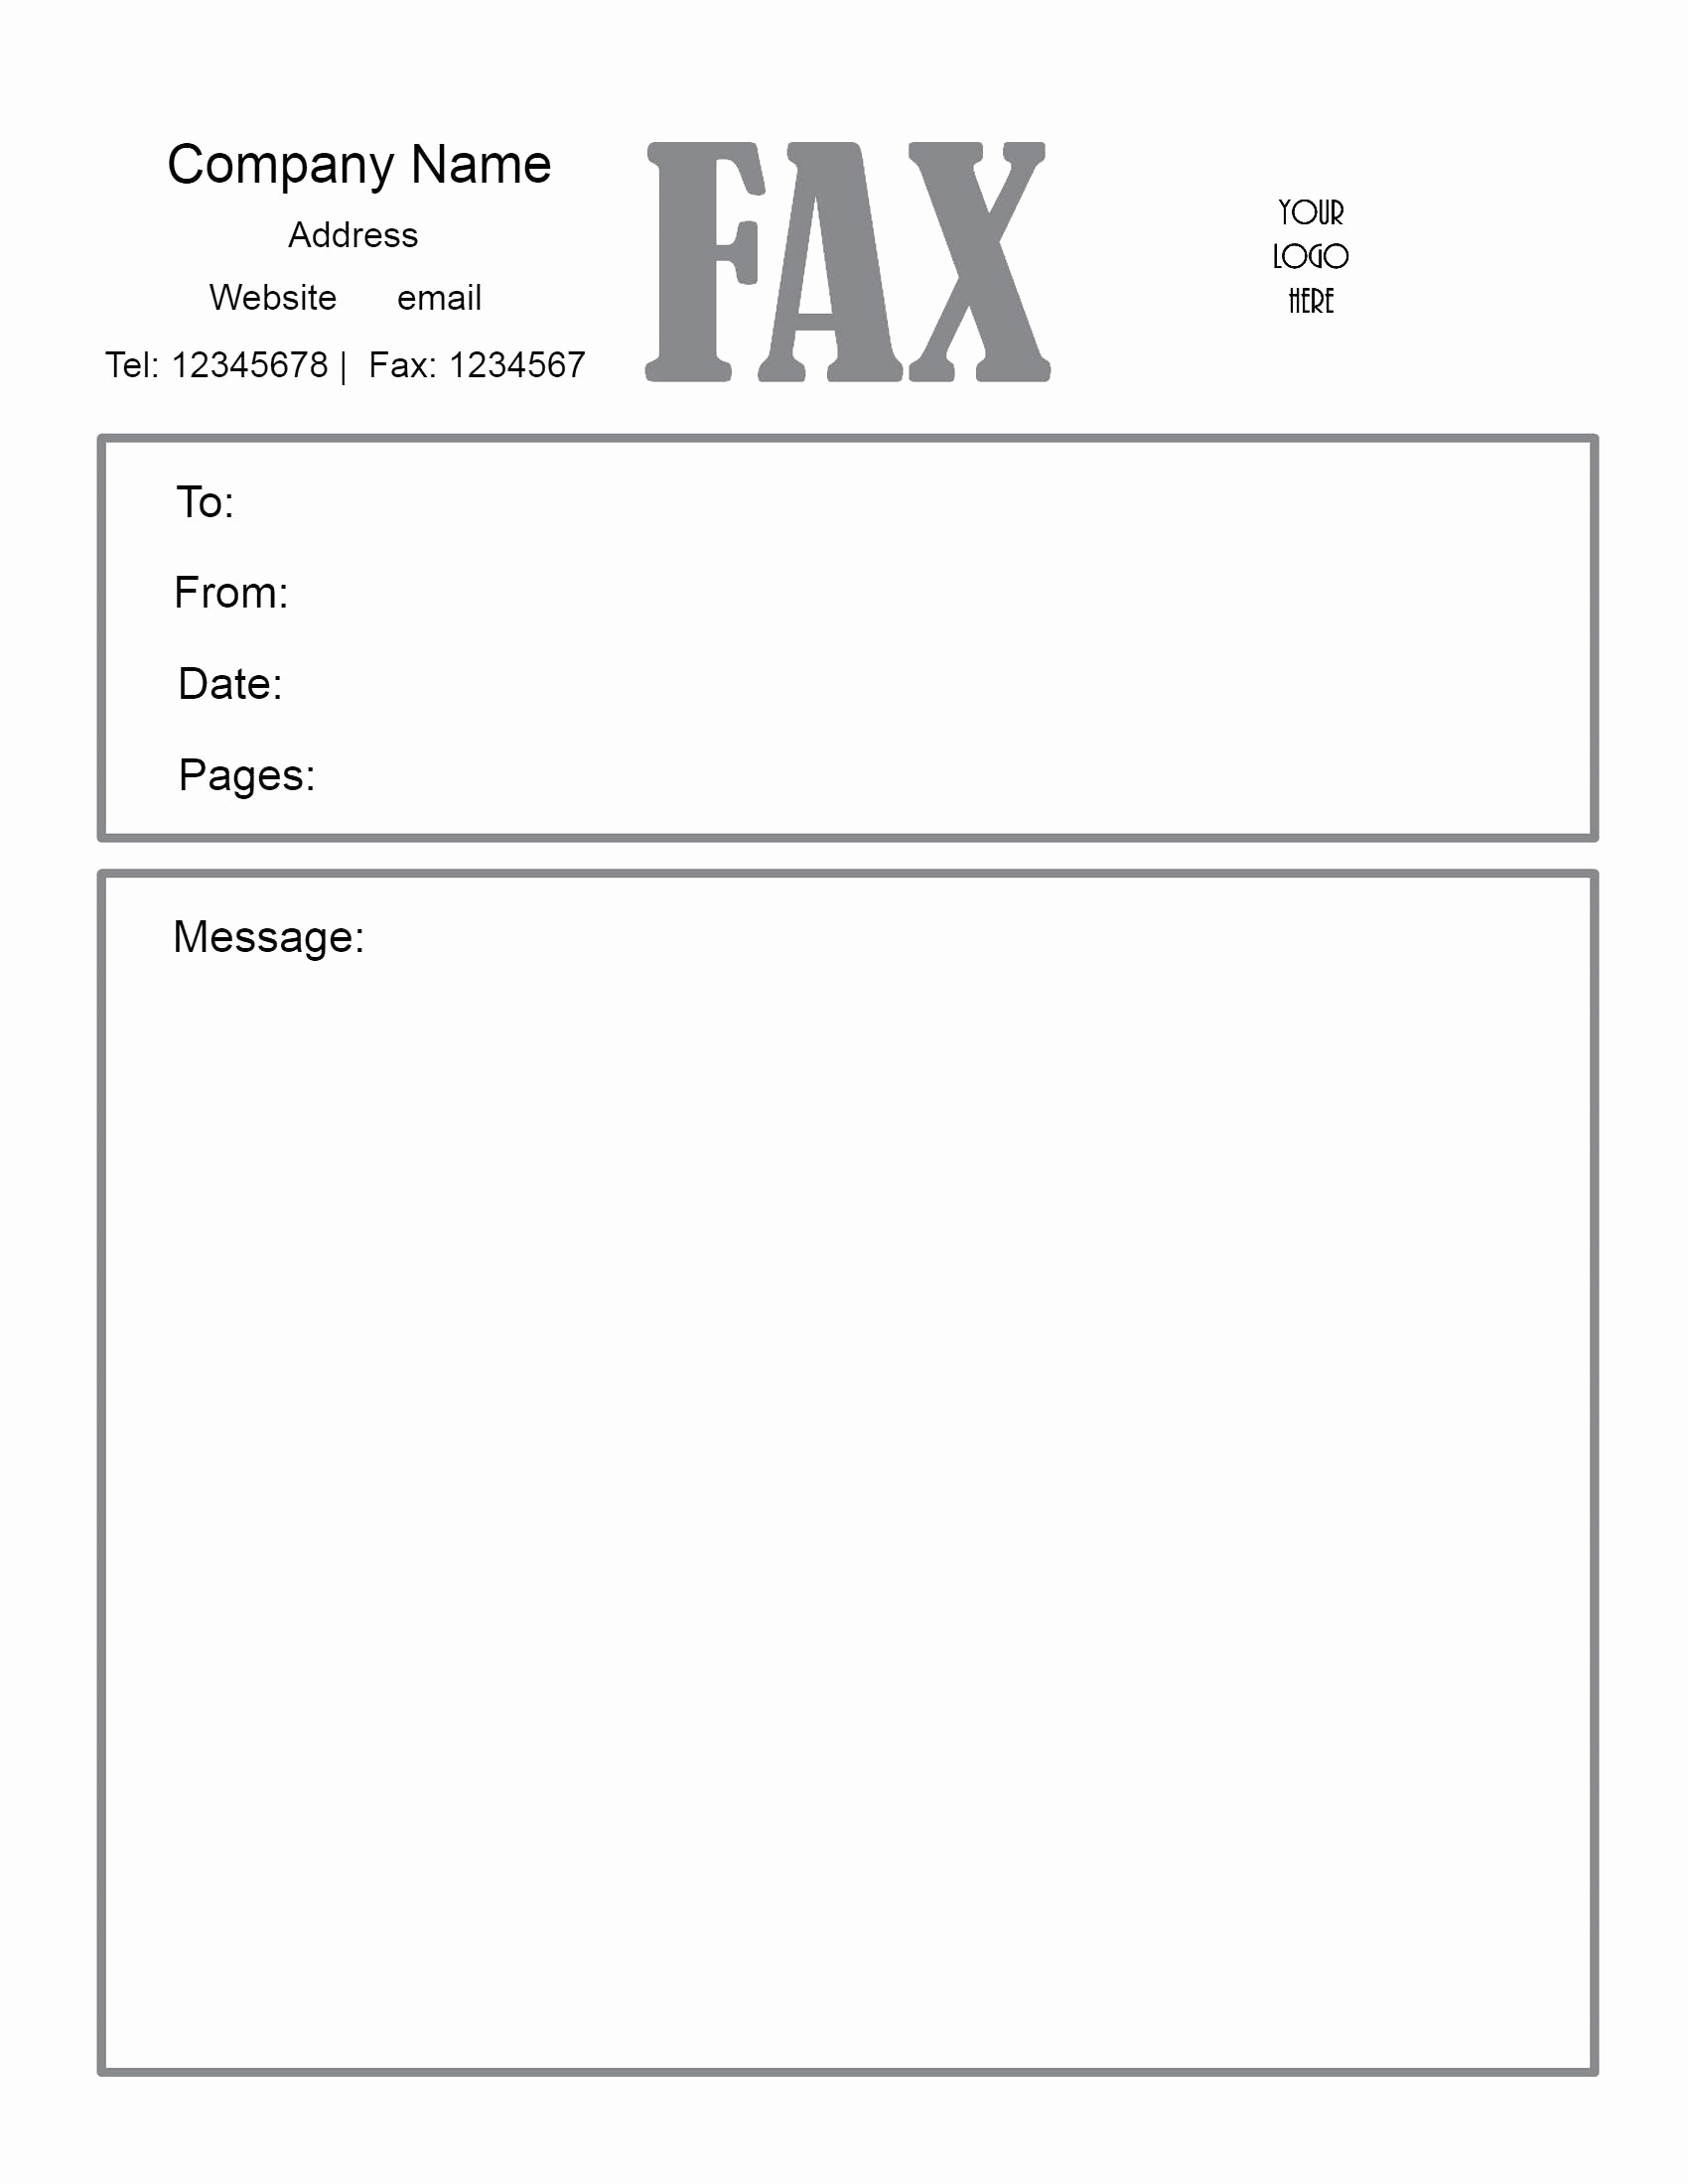 Template for Cover Letter Free Awesome Fax Cover Sheet Pdf Free Download